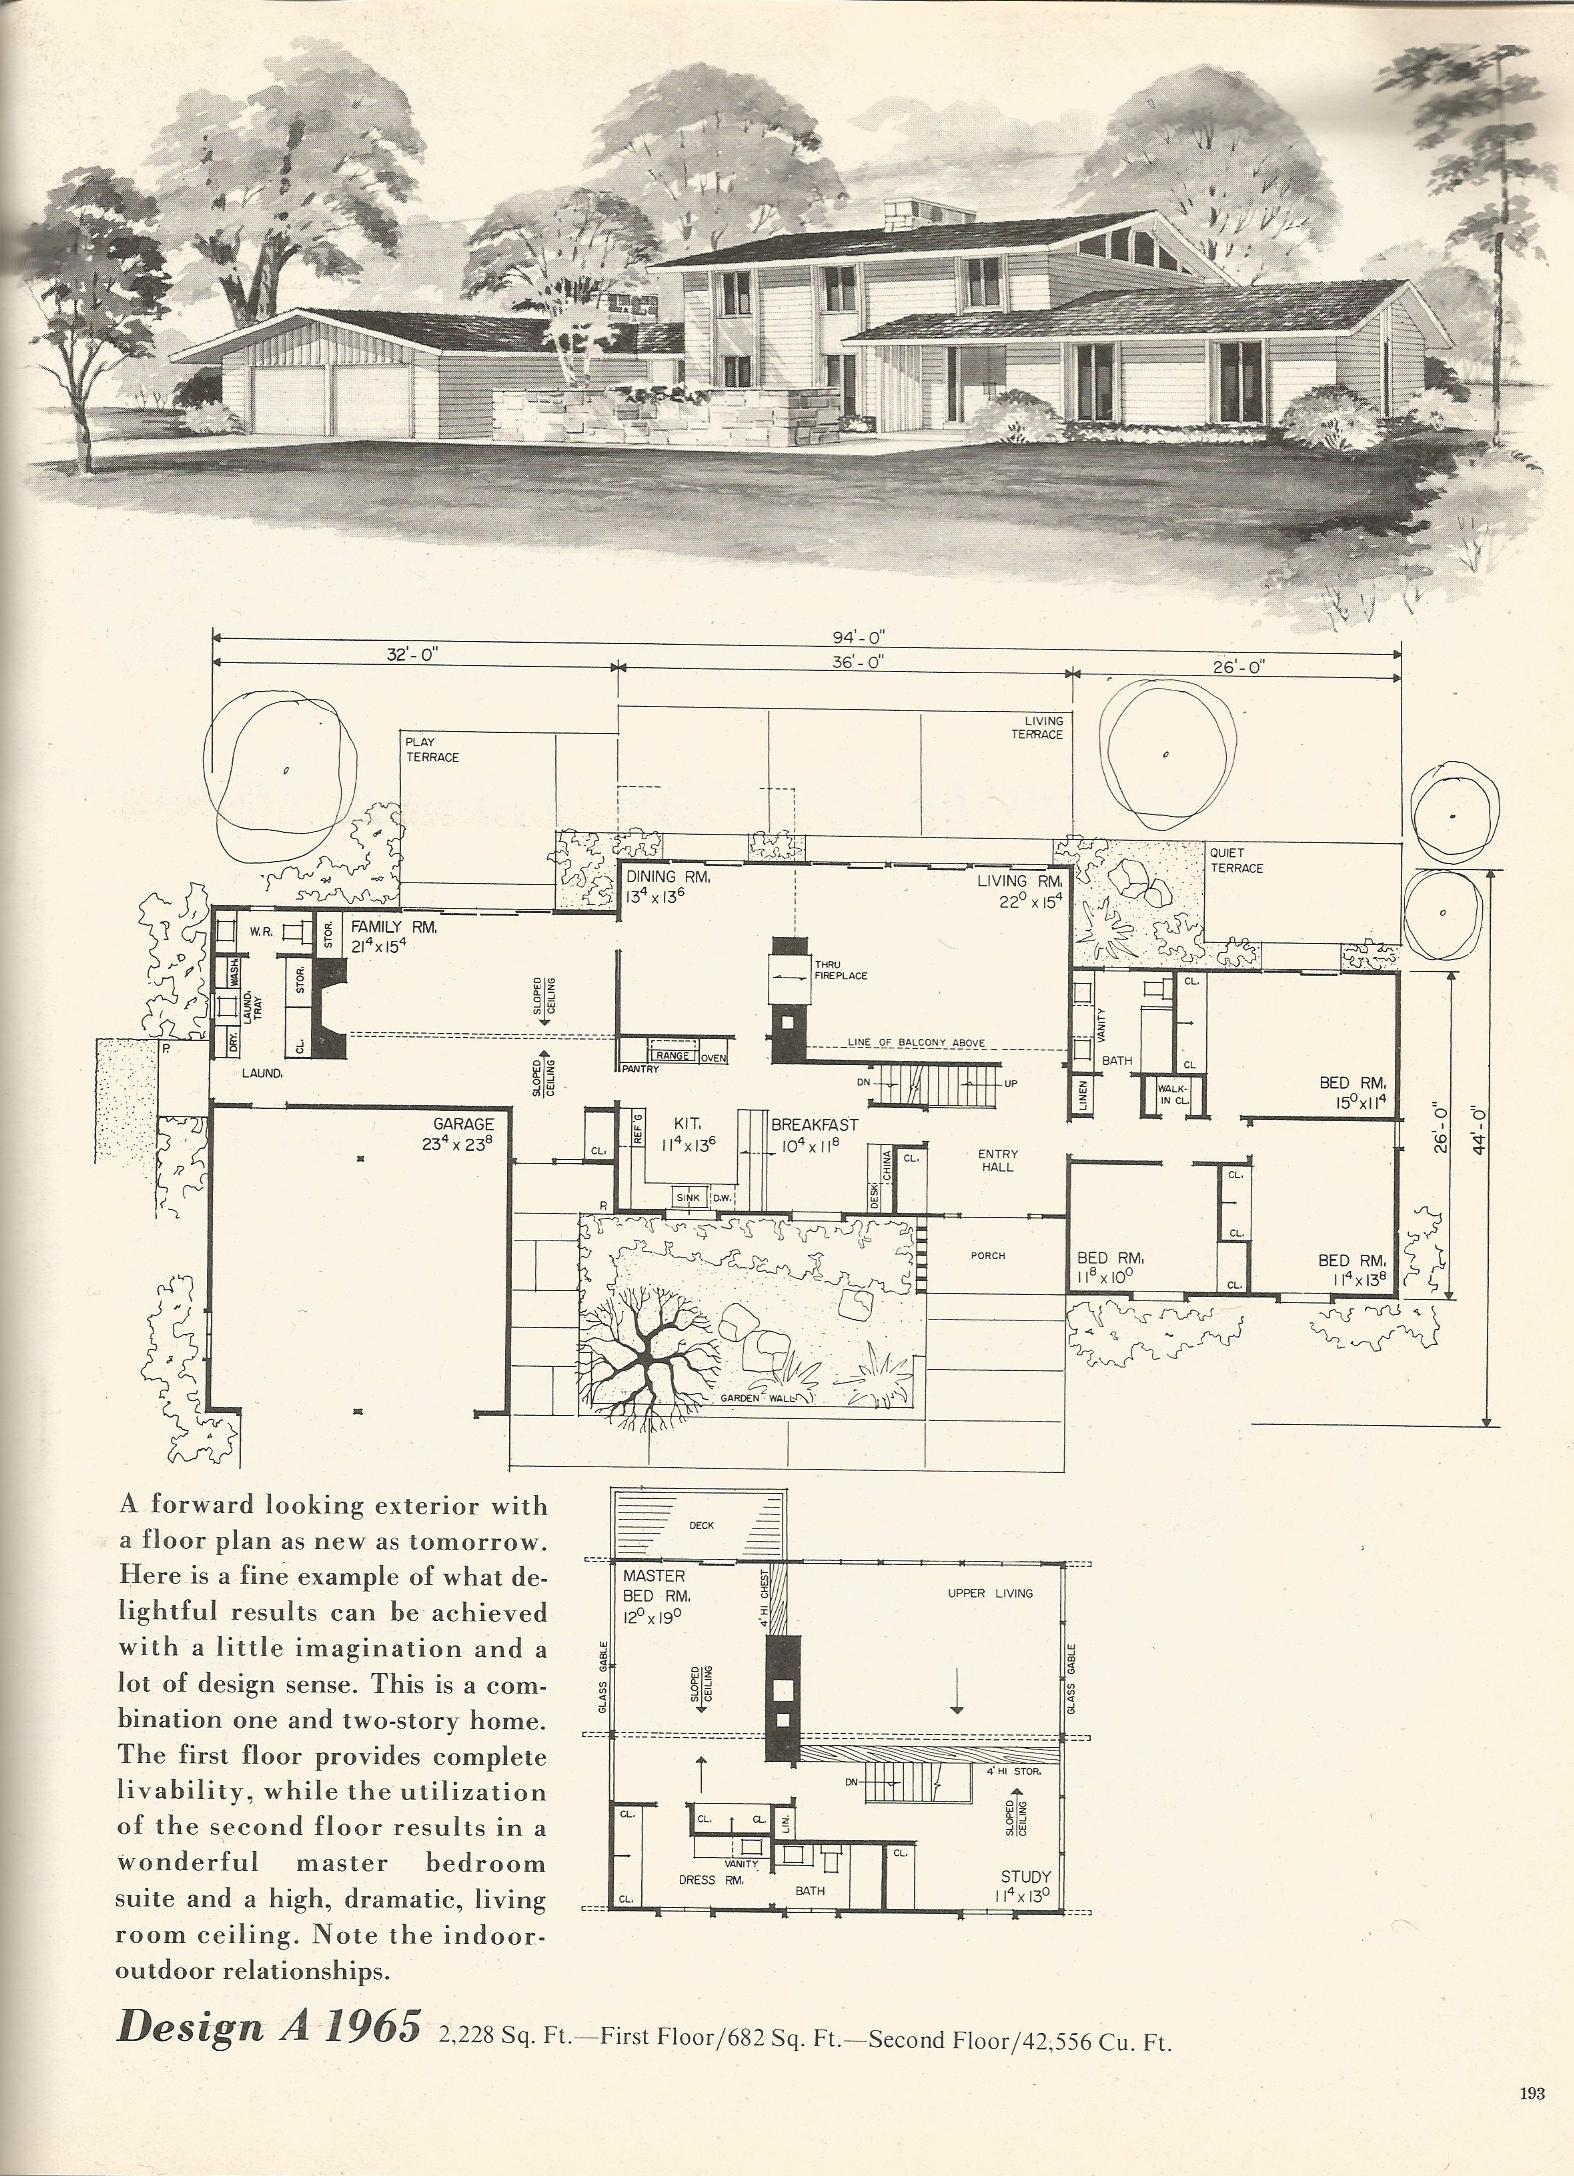 vintage house plans 1970s contemporary designs posted